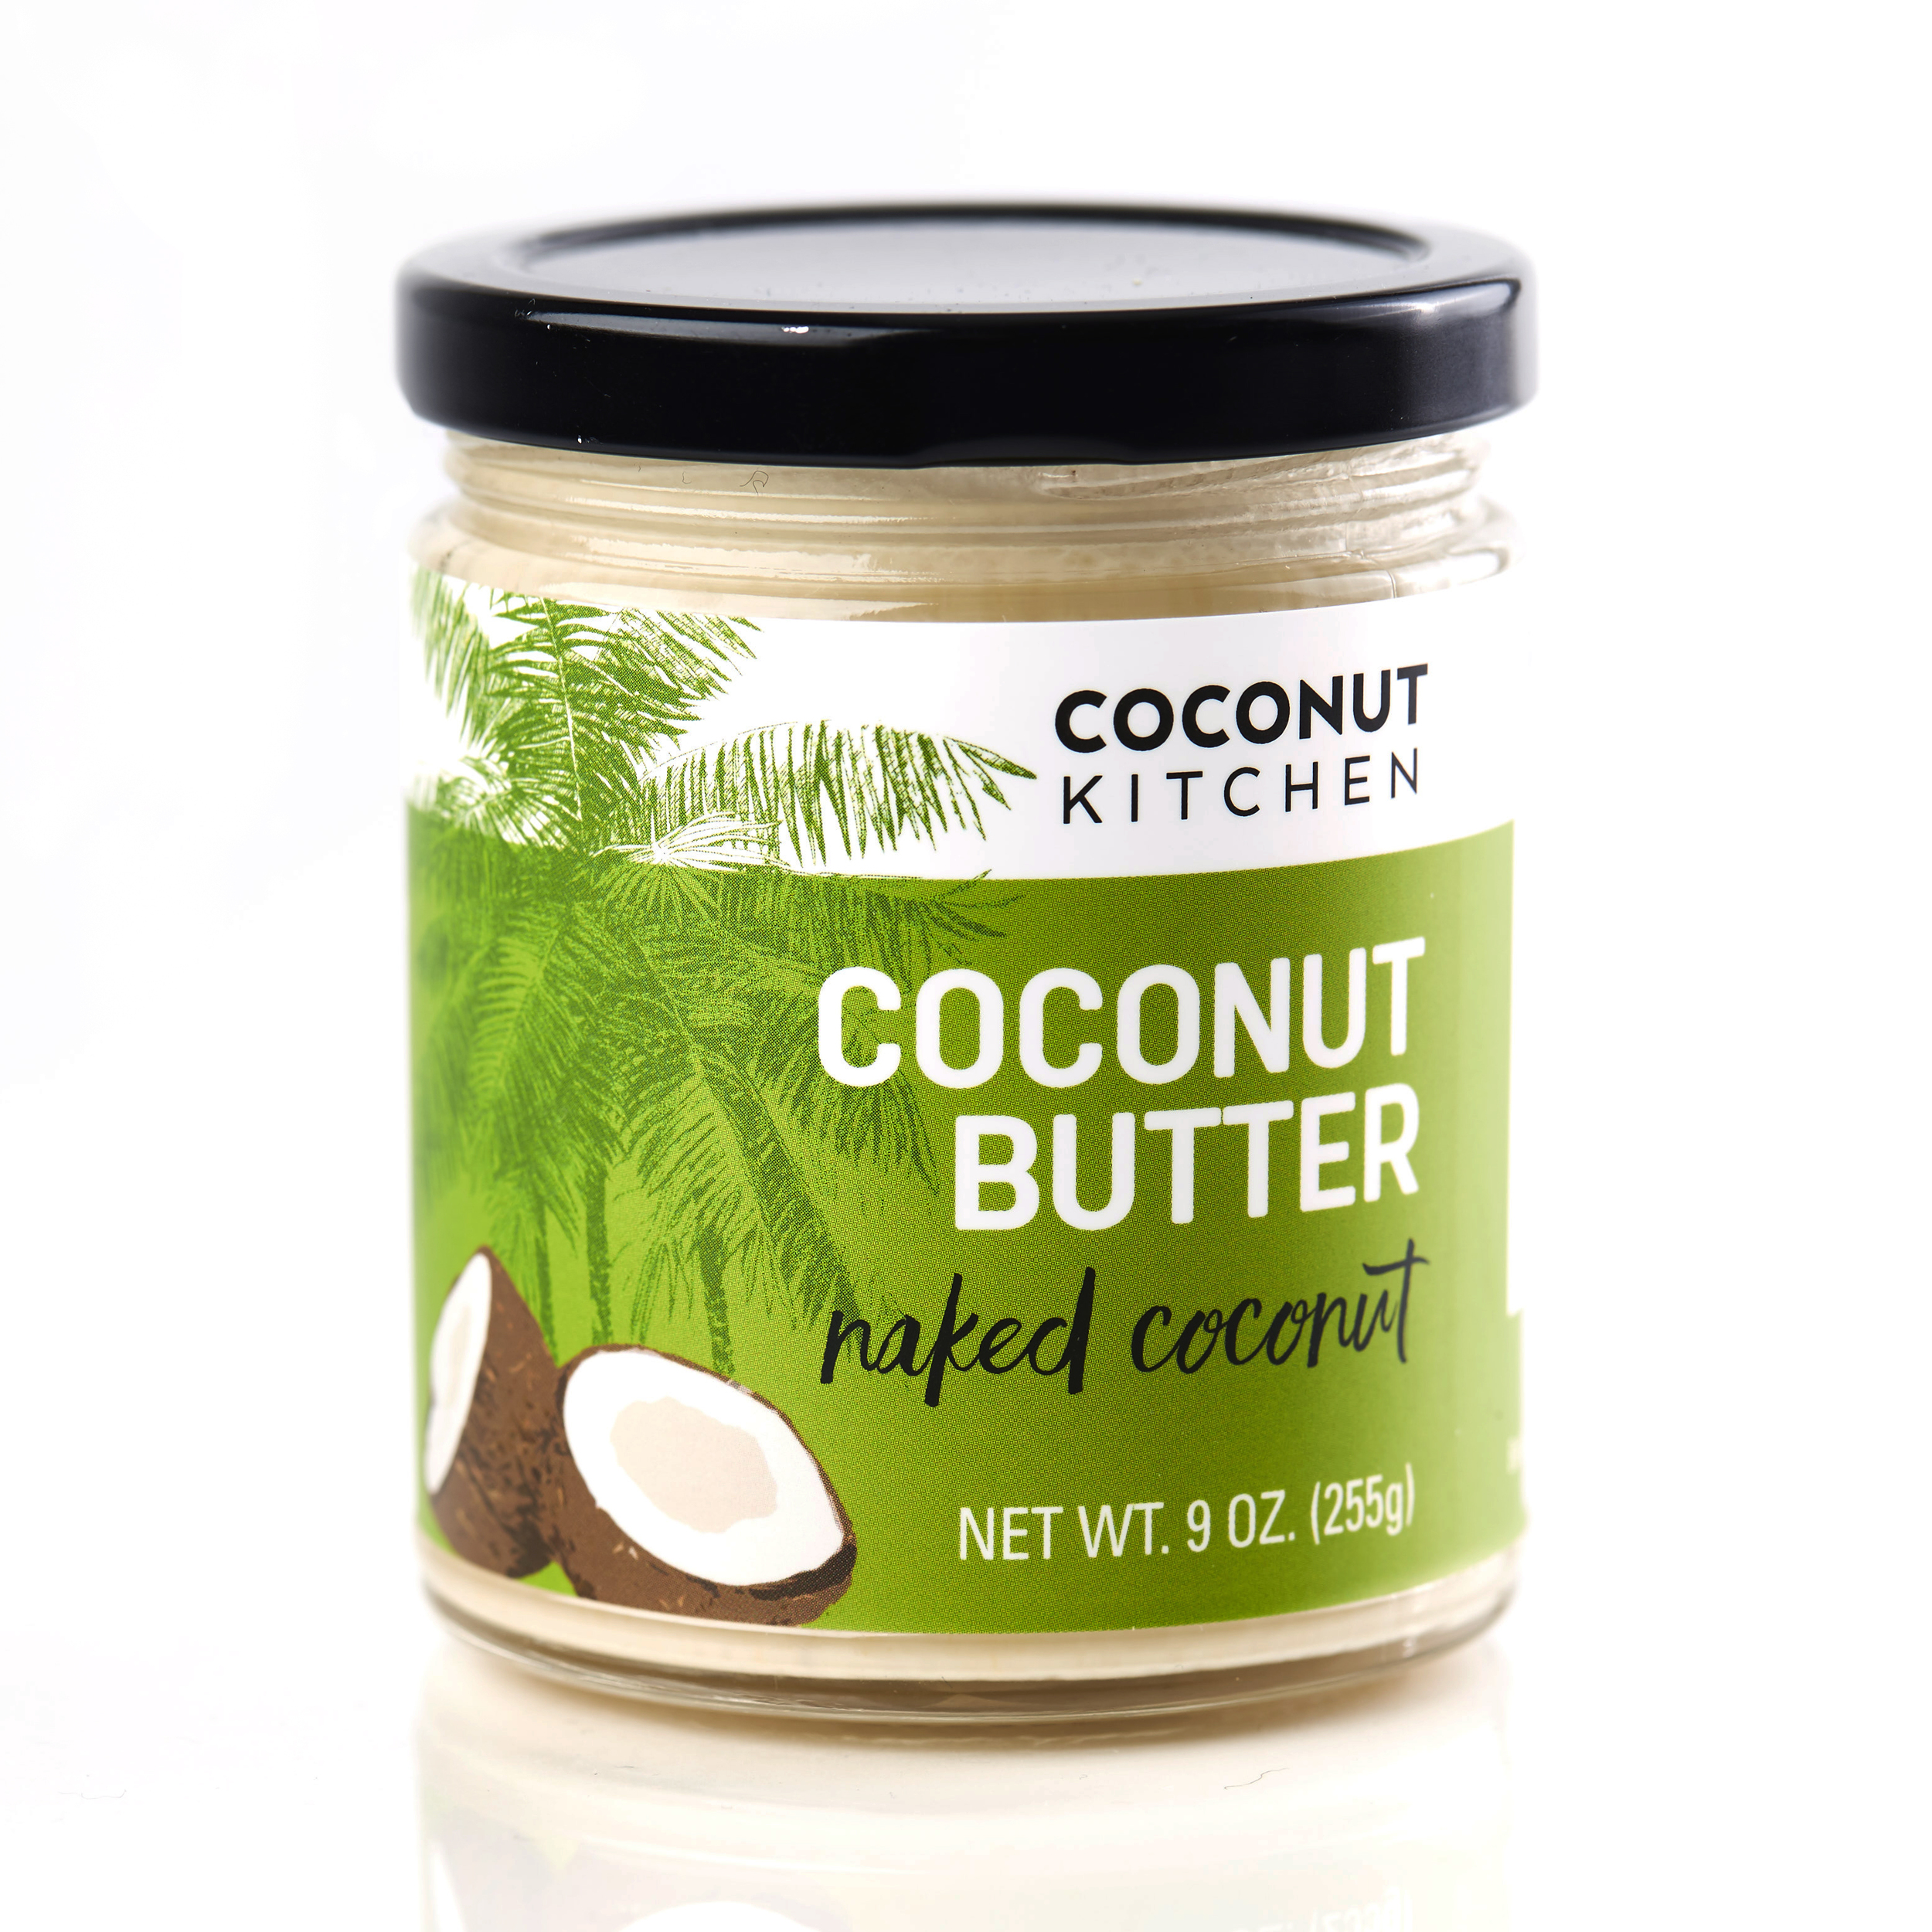 naked coconut butter